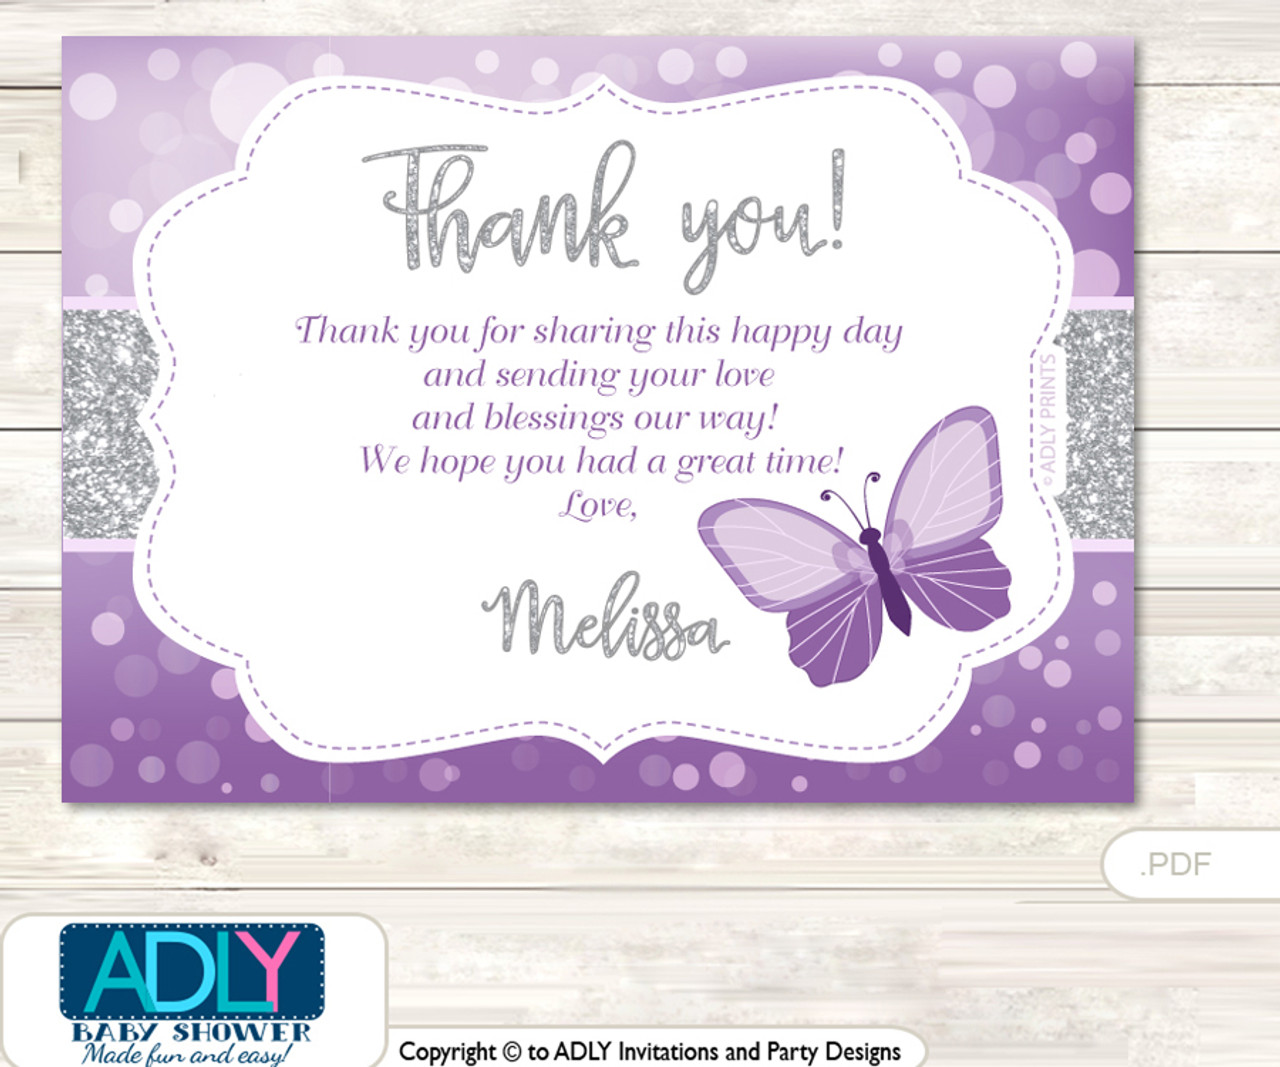 Purple Butterfly Thank You Printable Card With Name Personalization For Baby Shower Or Birthday Party